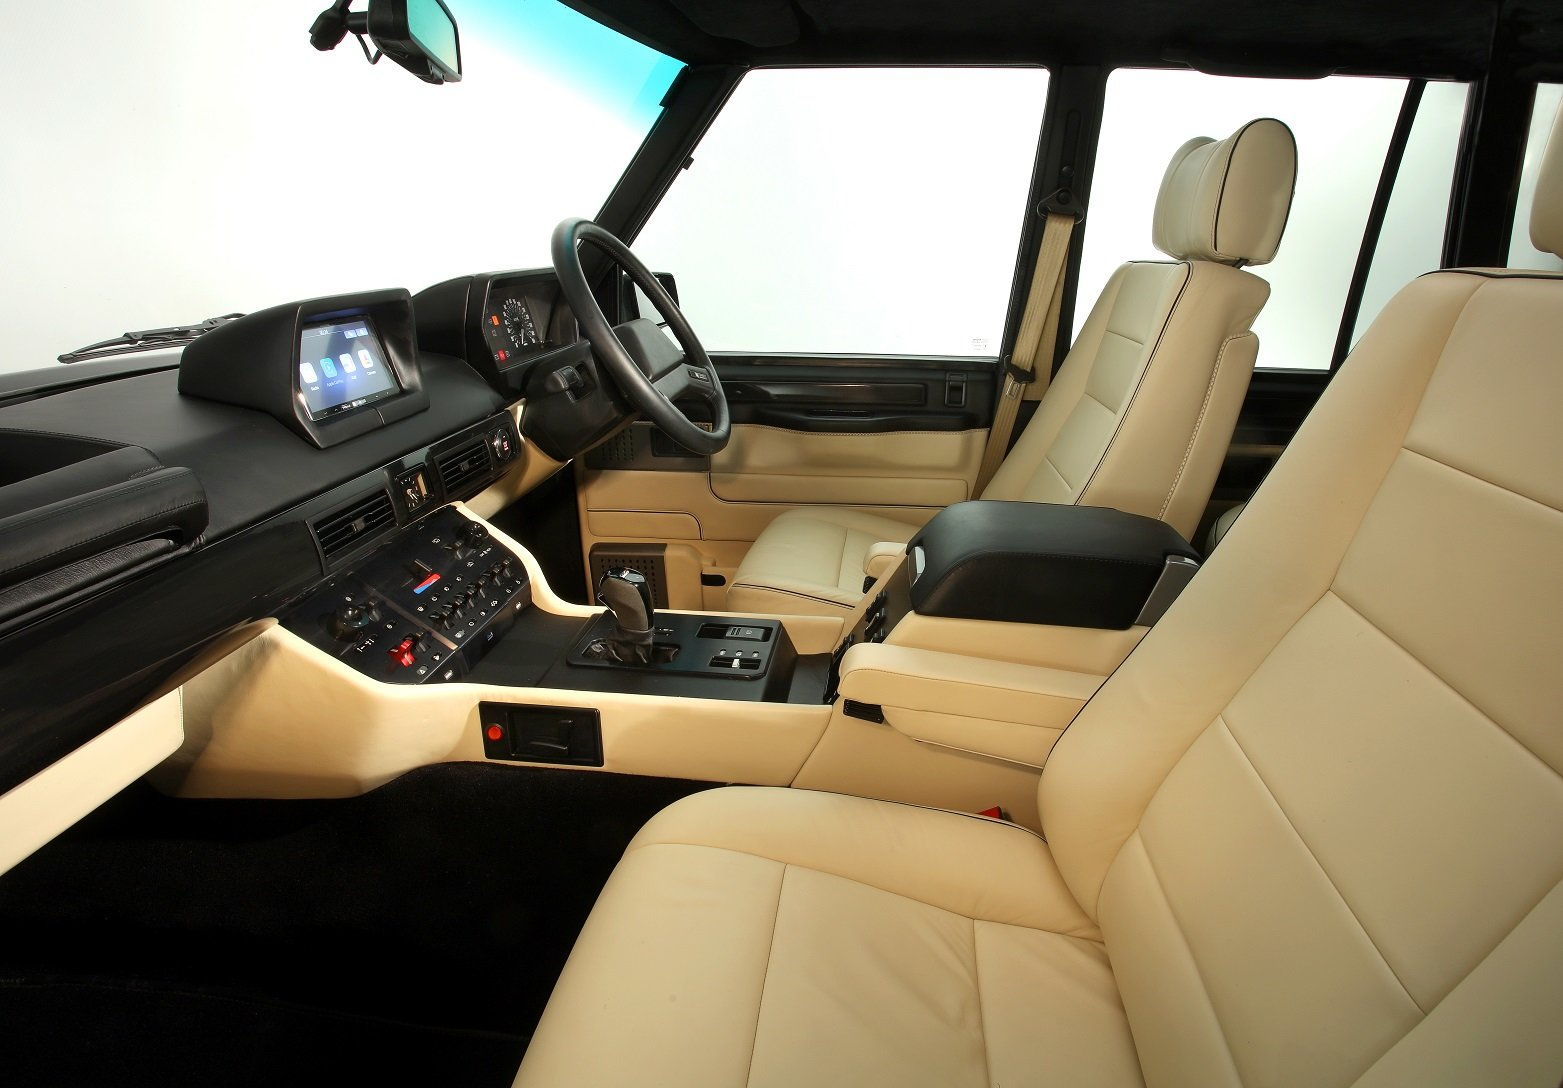 2004 Range Rover Chieftain, re-engineered Supercar For Sale (picture 4 of 6)